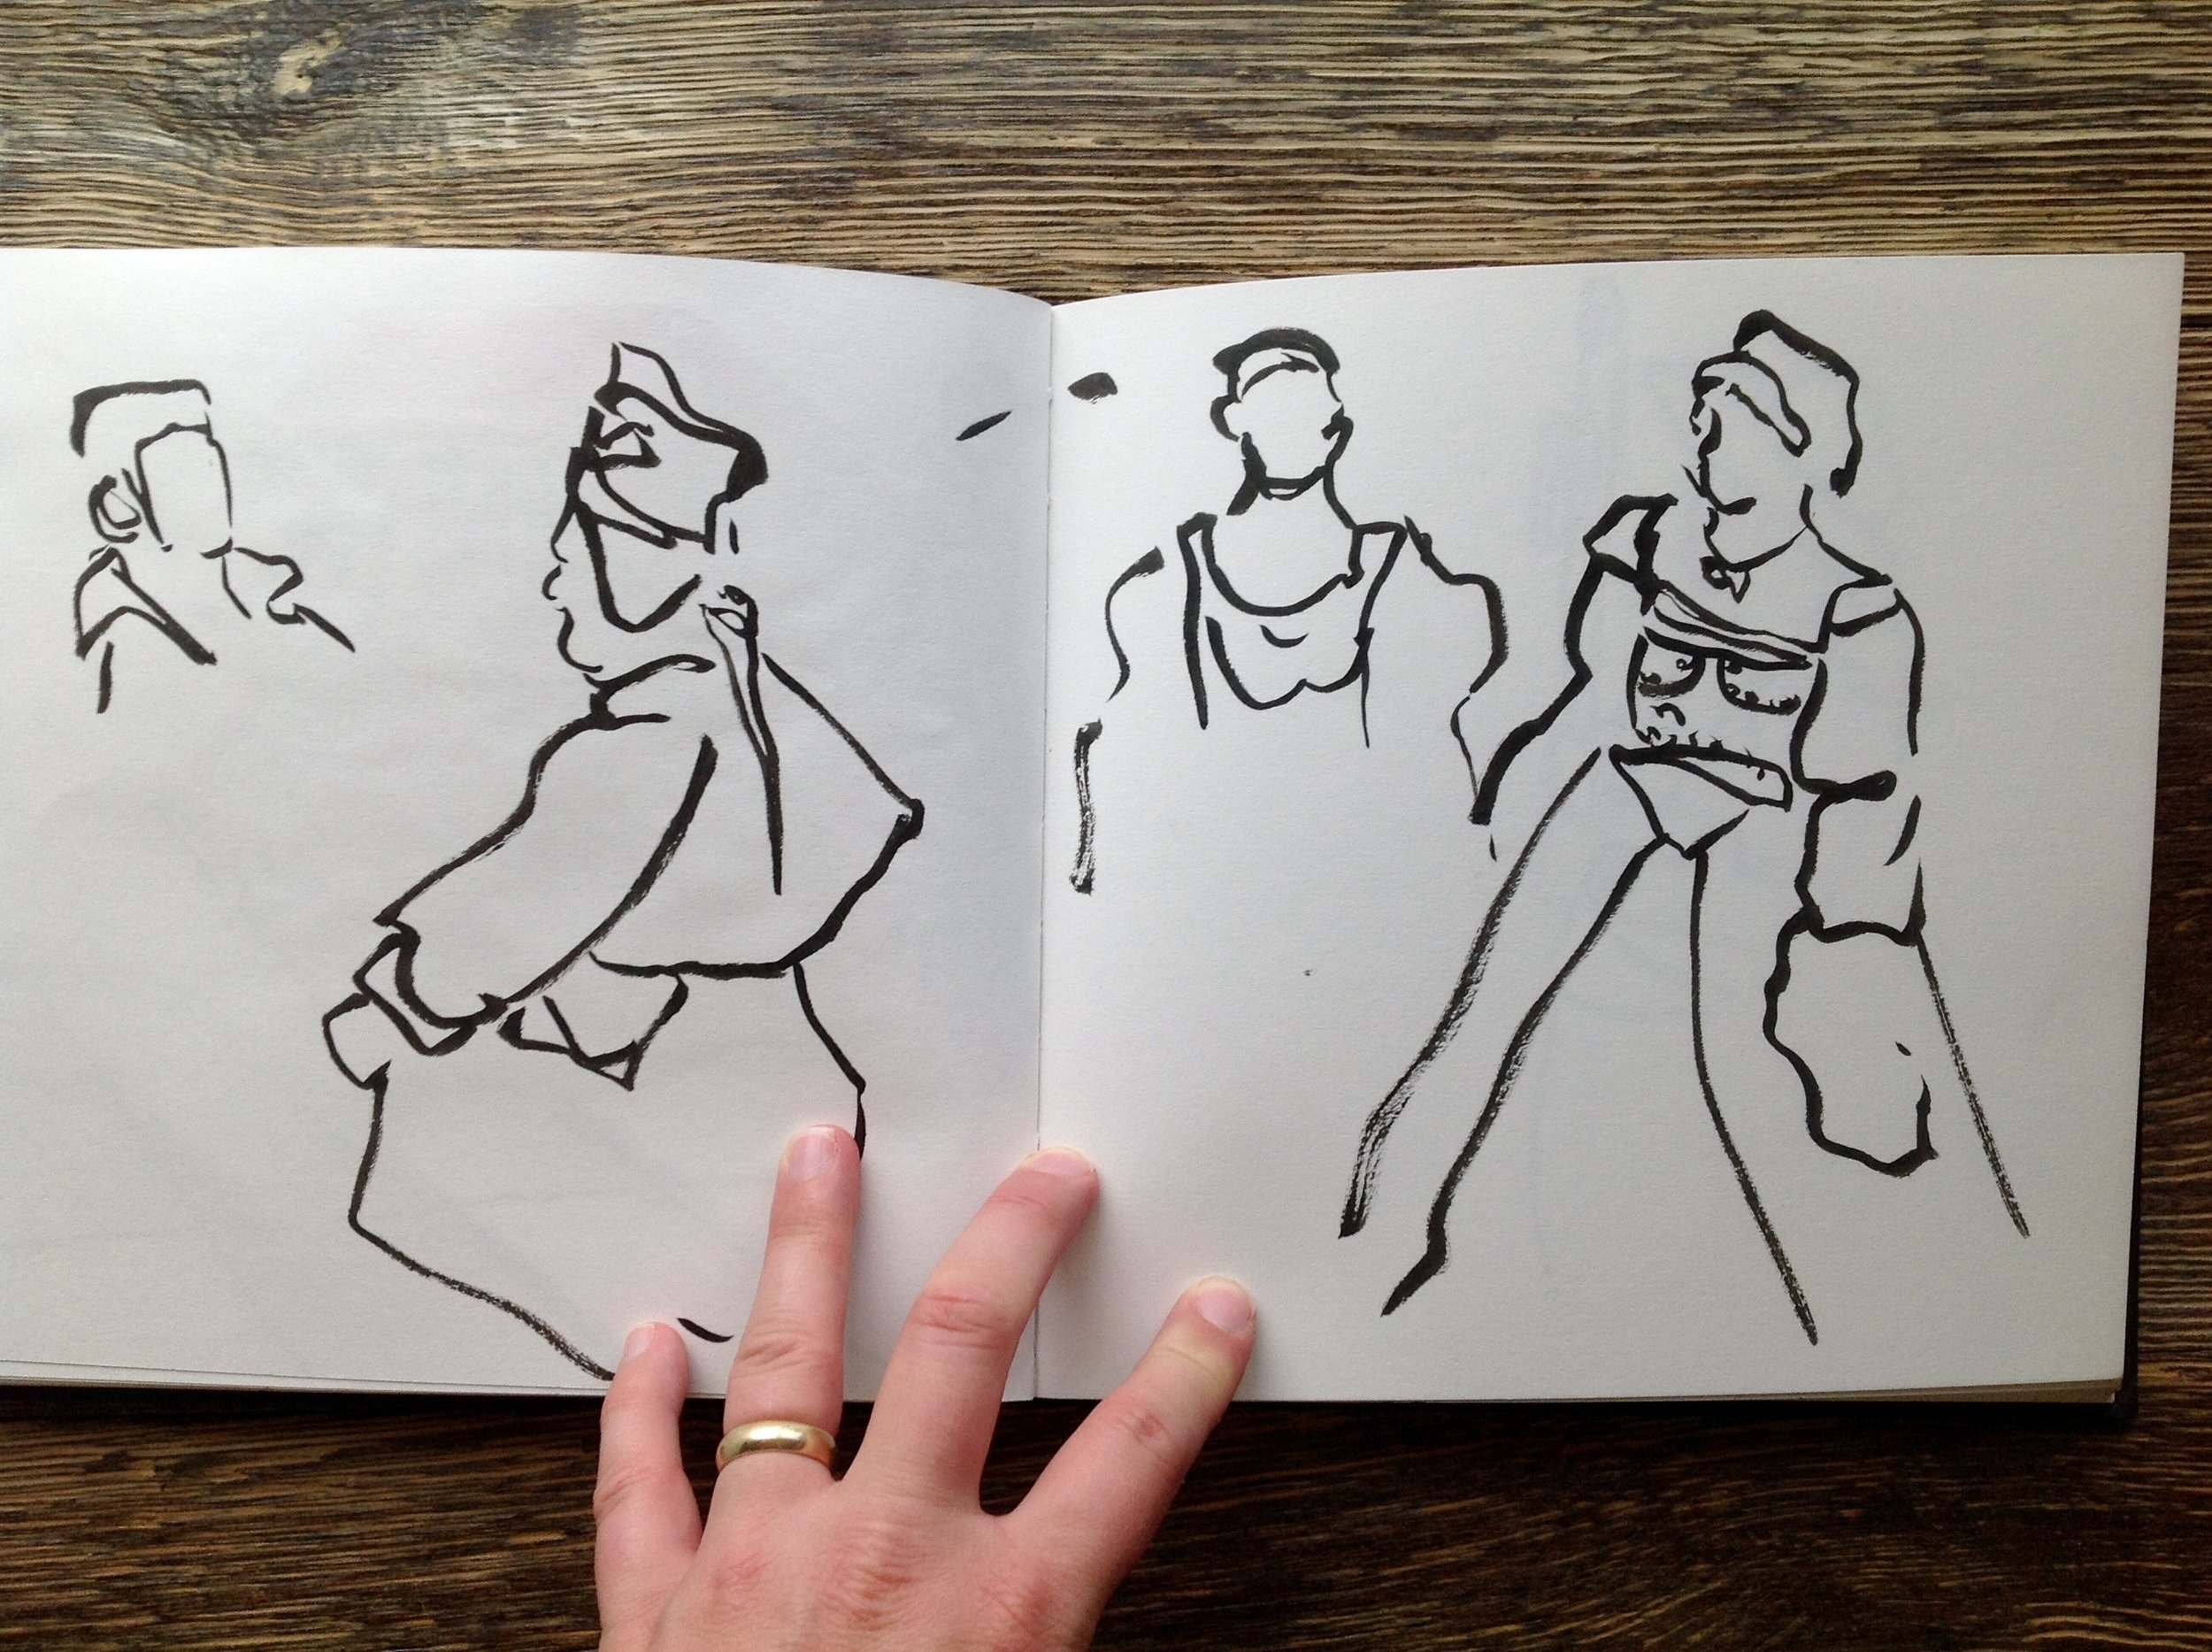 I attempted to sketch a couple of the Renaissance performers as they went through the motions of a dance. I am planning to attend and sketch the Renaissance Fair in October, which should be a lot of fun.